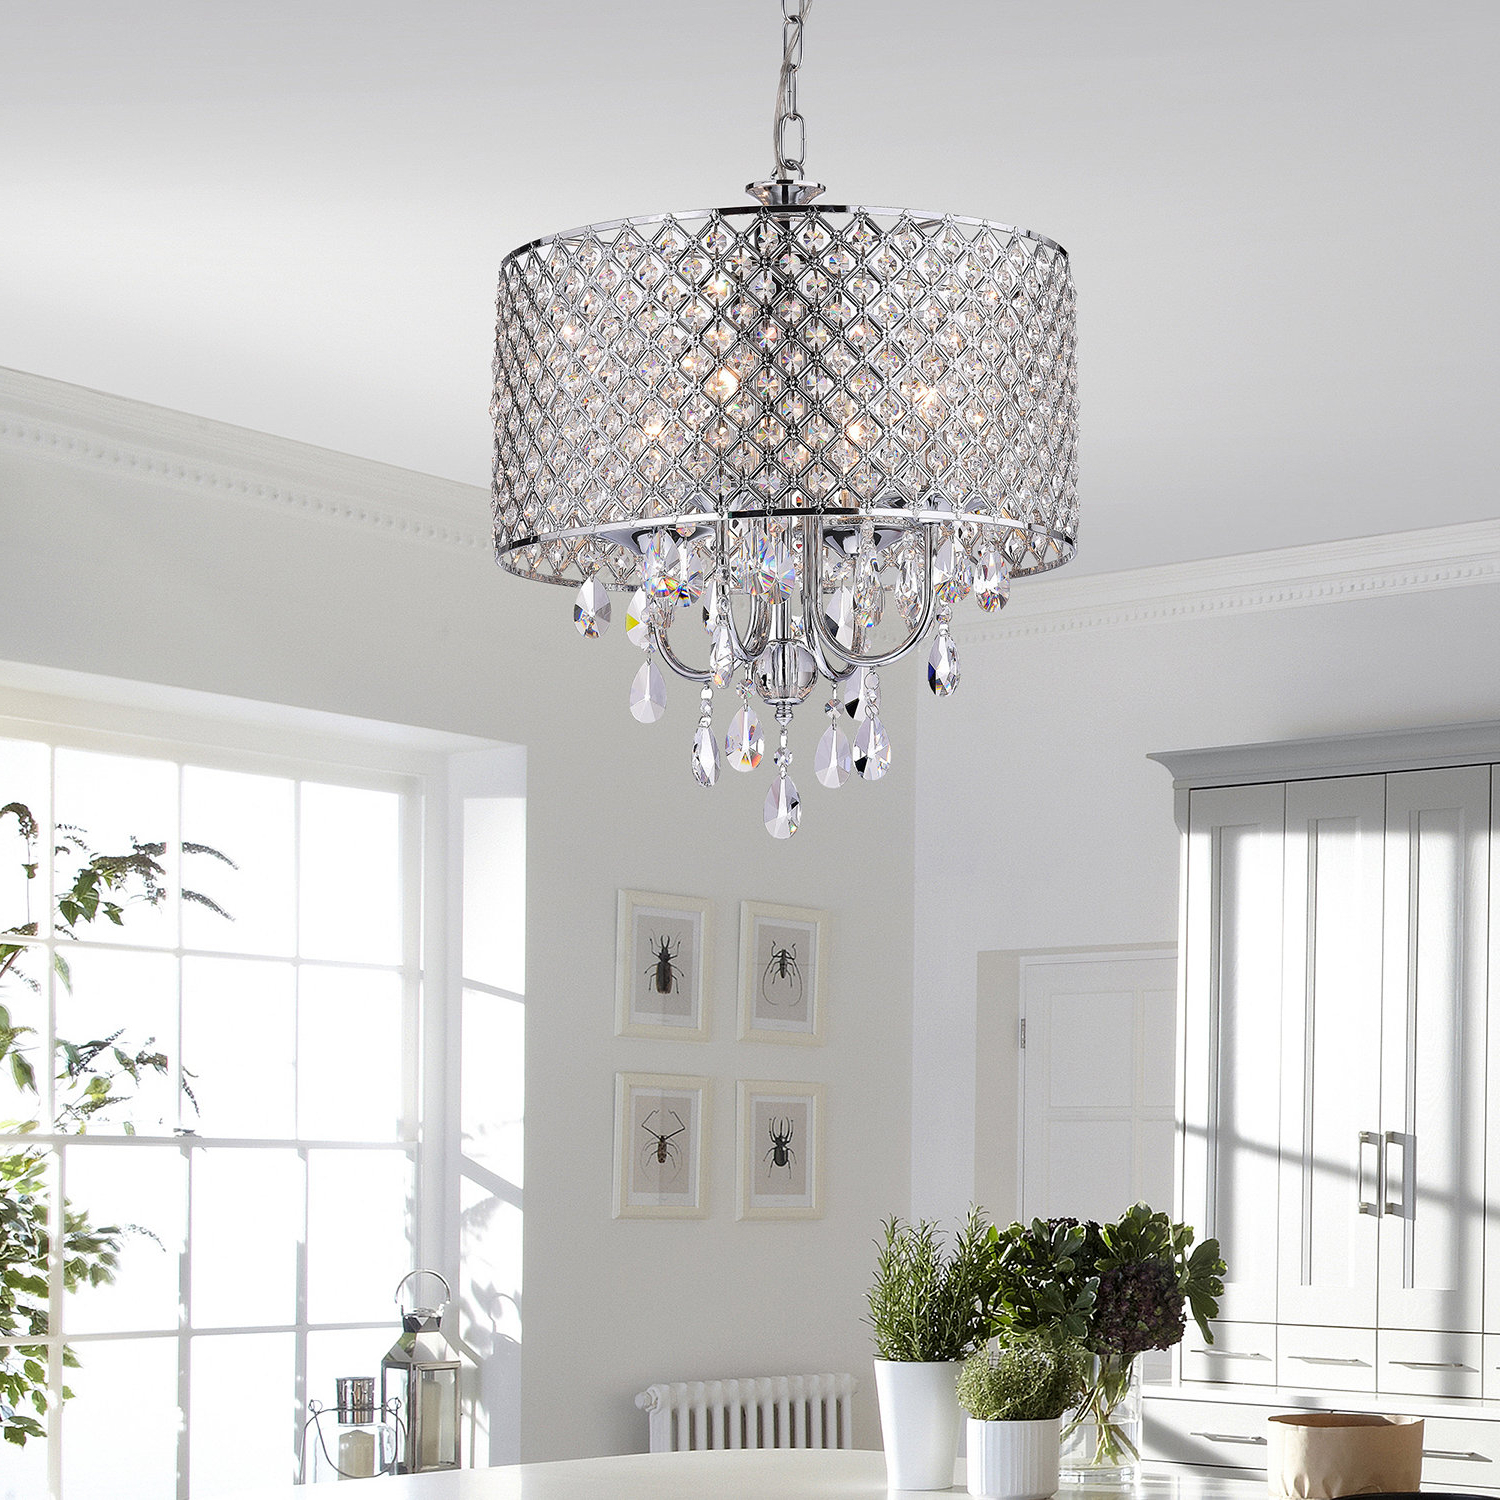 Albano 4 Light Crystal Chandeliers With Preferred Von 4 Light Crystal Chandelier (View 3 of 20)